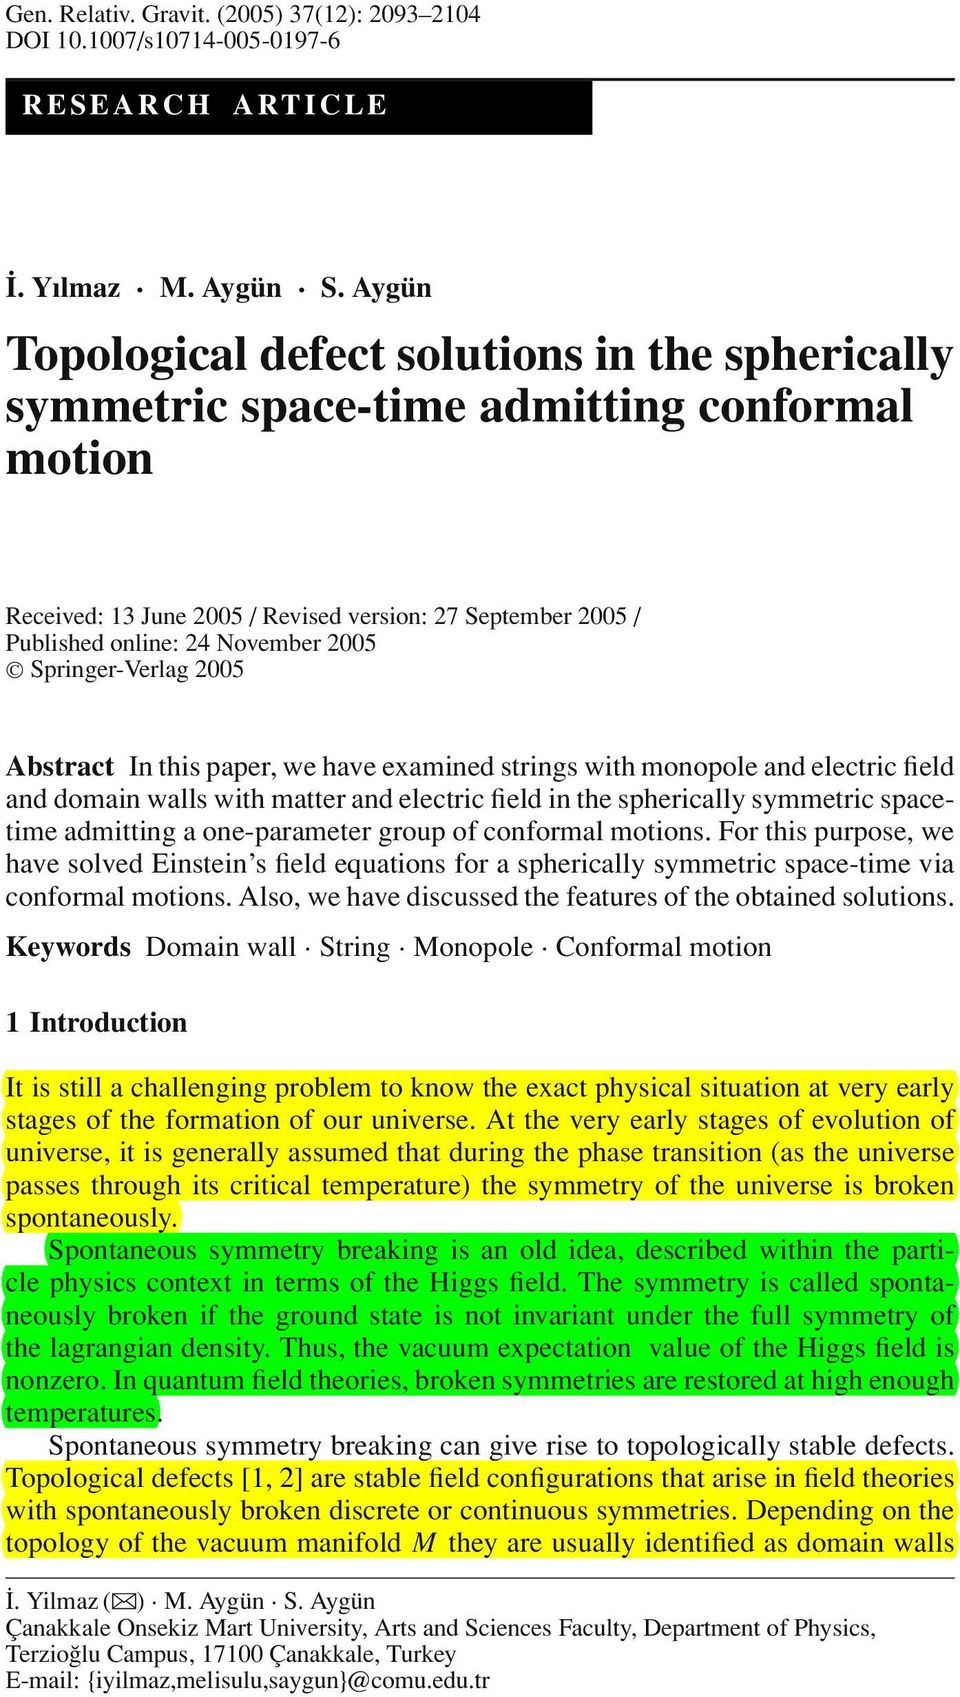 Springer-Verlag 005 Abstract In this paper, we have examined strings with monopole and electric field and domain walls with matter and electric field in the spherically symmetric spacetime admitting